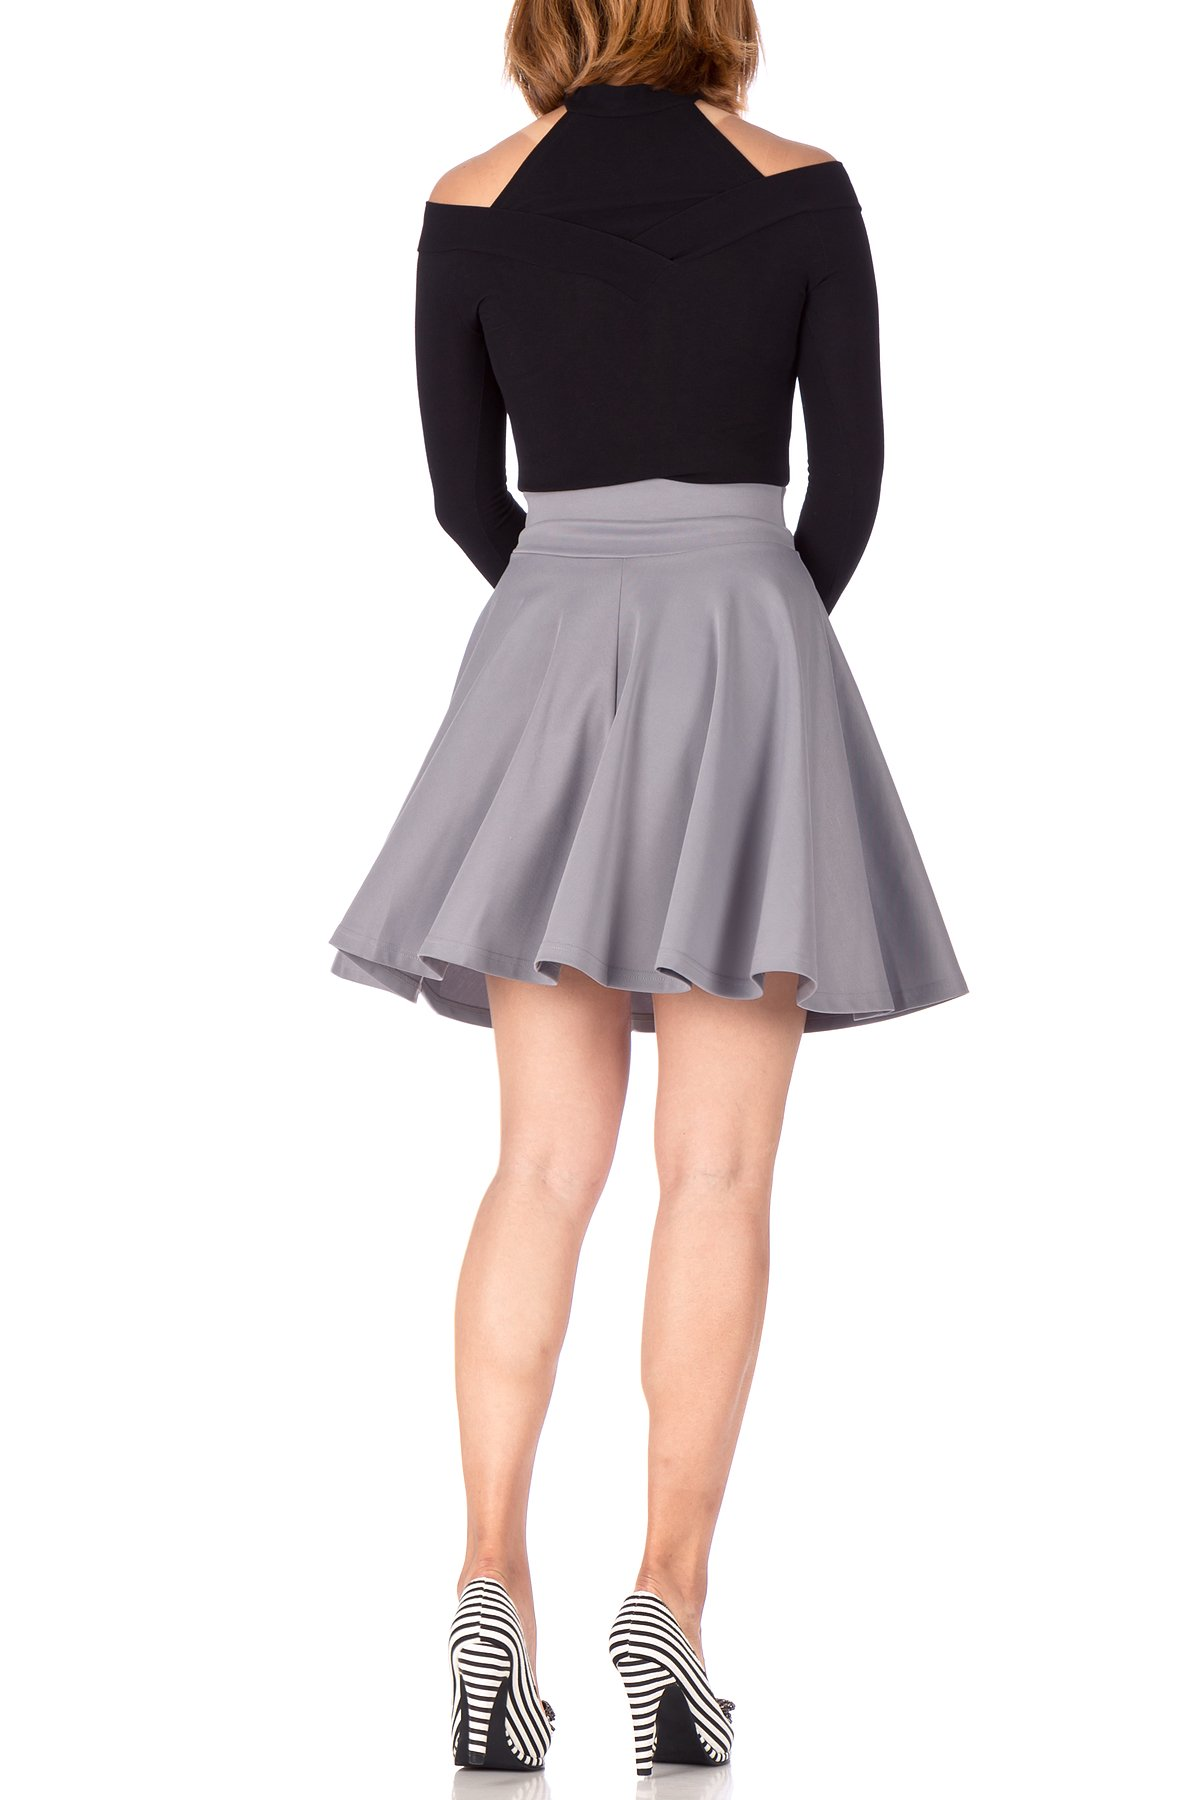 Breathtaking High Waist A line Circle Full Flared Skater Mini Skirt Light Gray 04